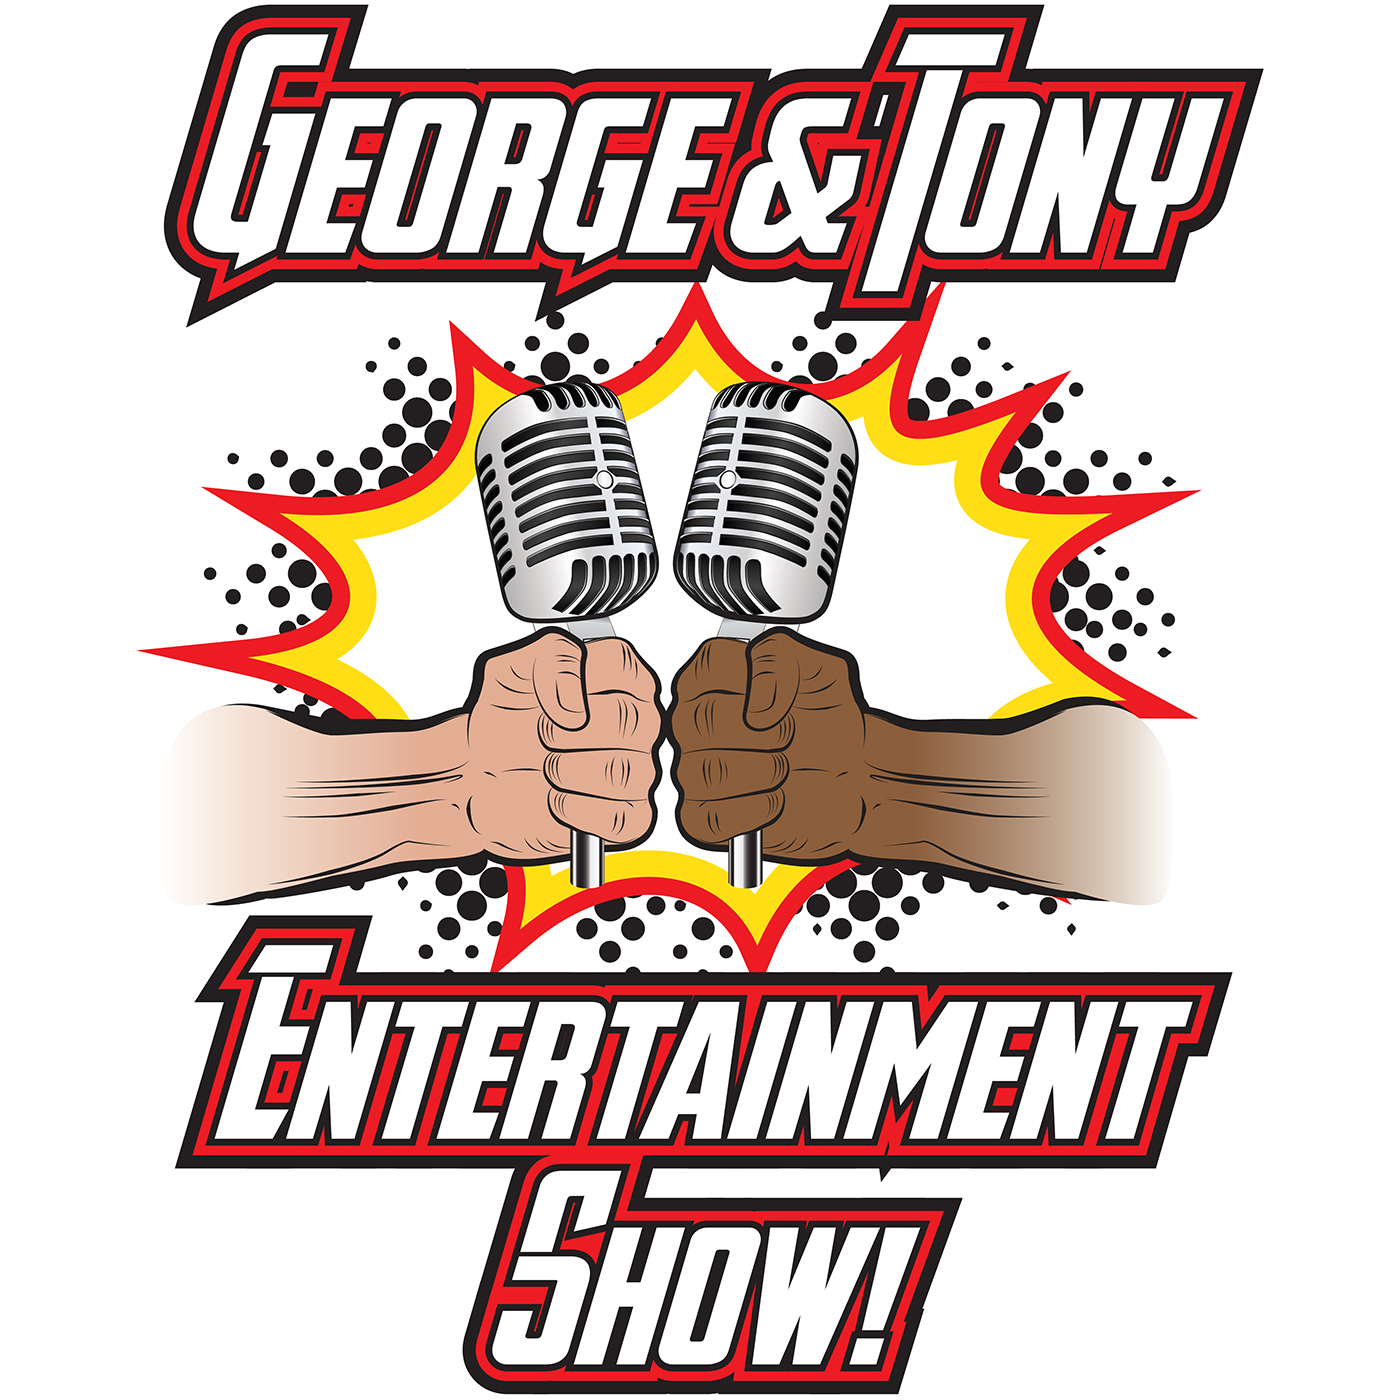 George and Tony Entertainment Show #70